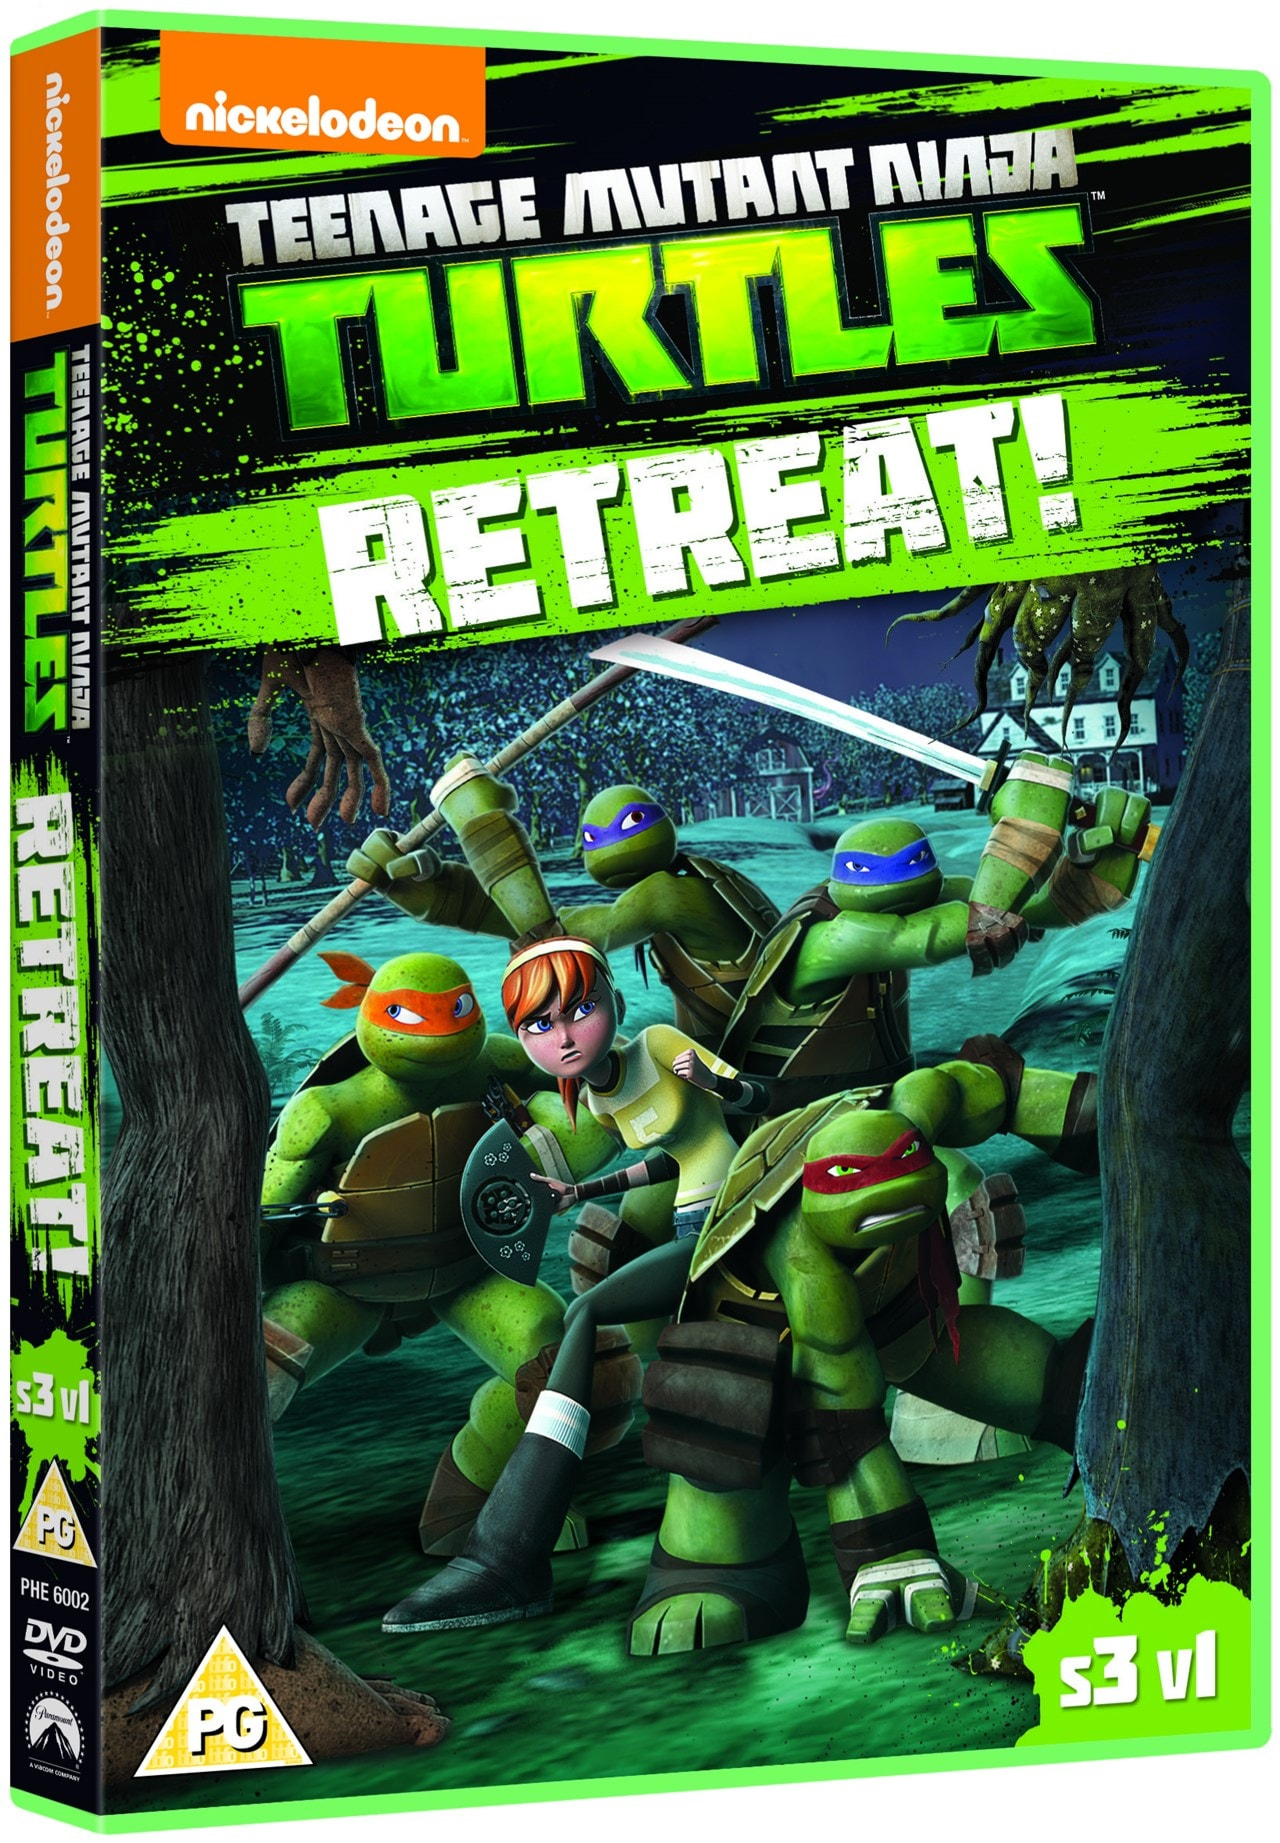 Teenage Mutant Ninja Turtles: Retreat! - Season 3 Volume 1 - 2